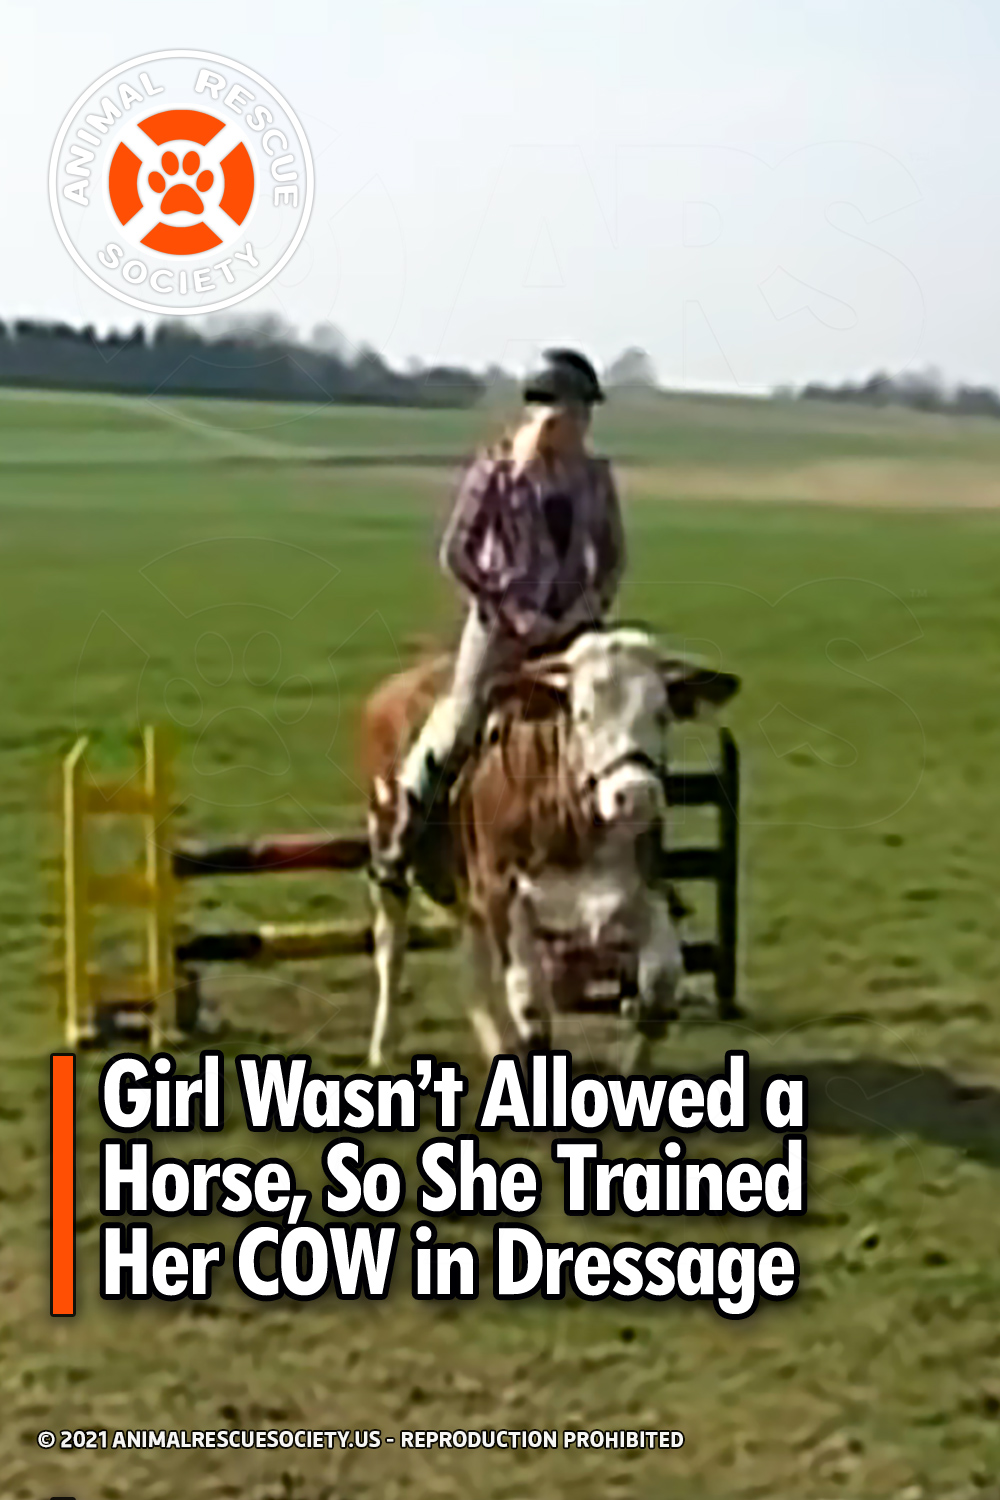 Girl Wasn't Allowed a Horse, So She Trained Her COW in Dressage